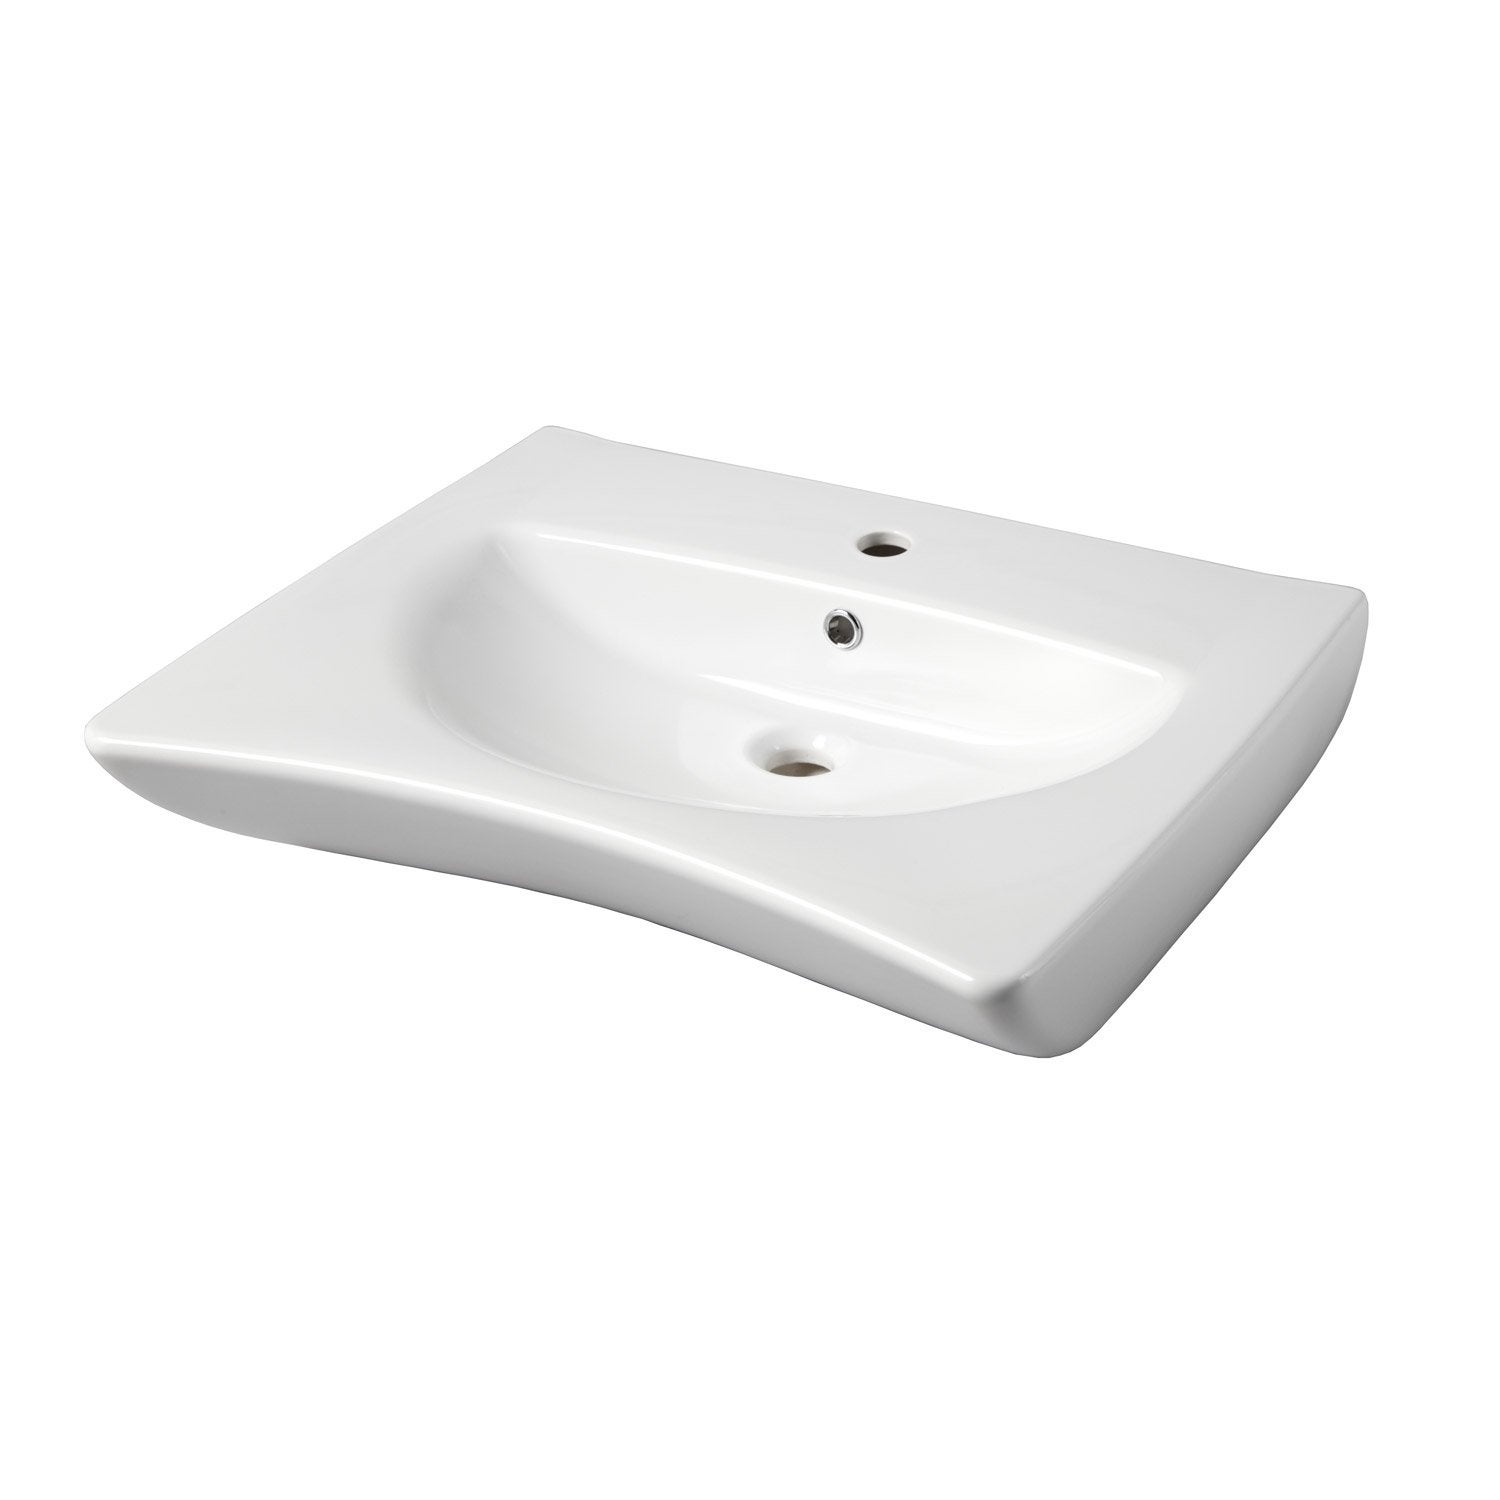 Lavabo en c ramique blanc ergonomic leroy merlin for Lavabo colonne leroy merlin